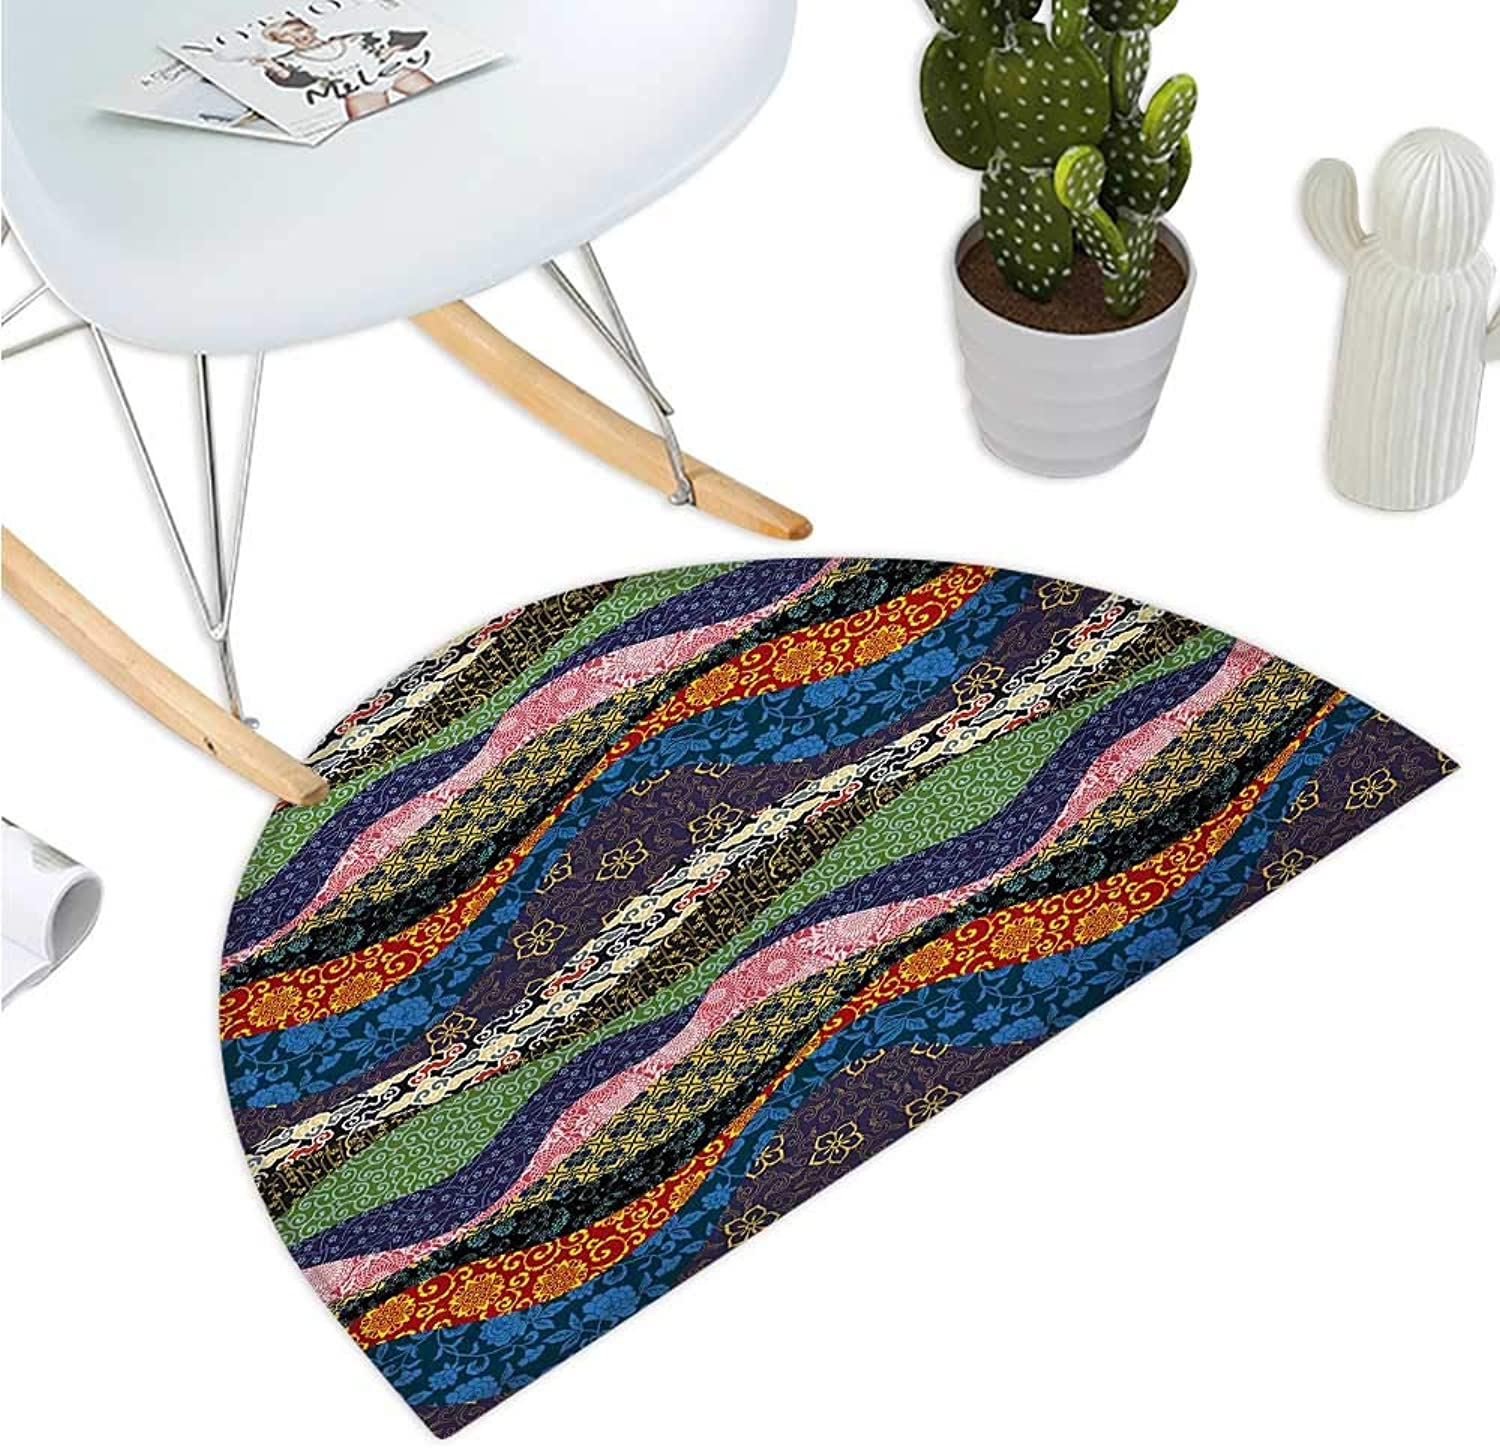 Asian Semicircular Cushion Asian Far Eastern Patchwork with Flowers Floral Pattern in Oriental Style Print Bathroom Mat H 51.1  xD 76.7  Multicolord